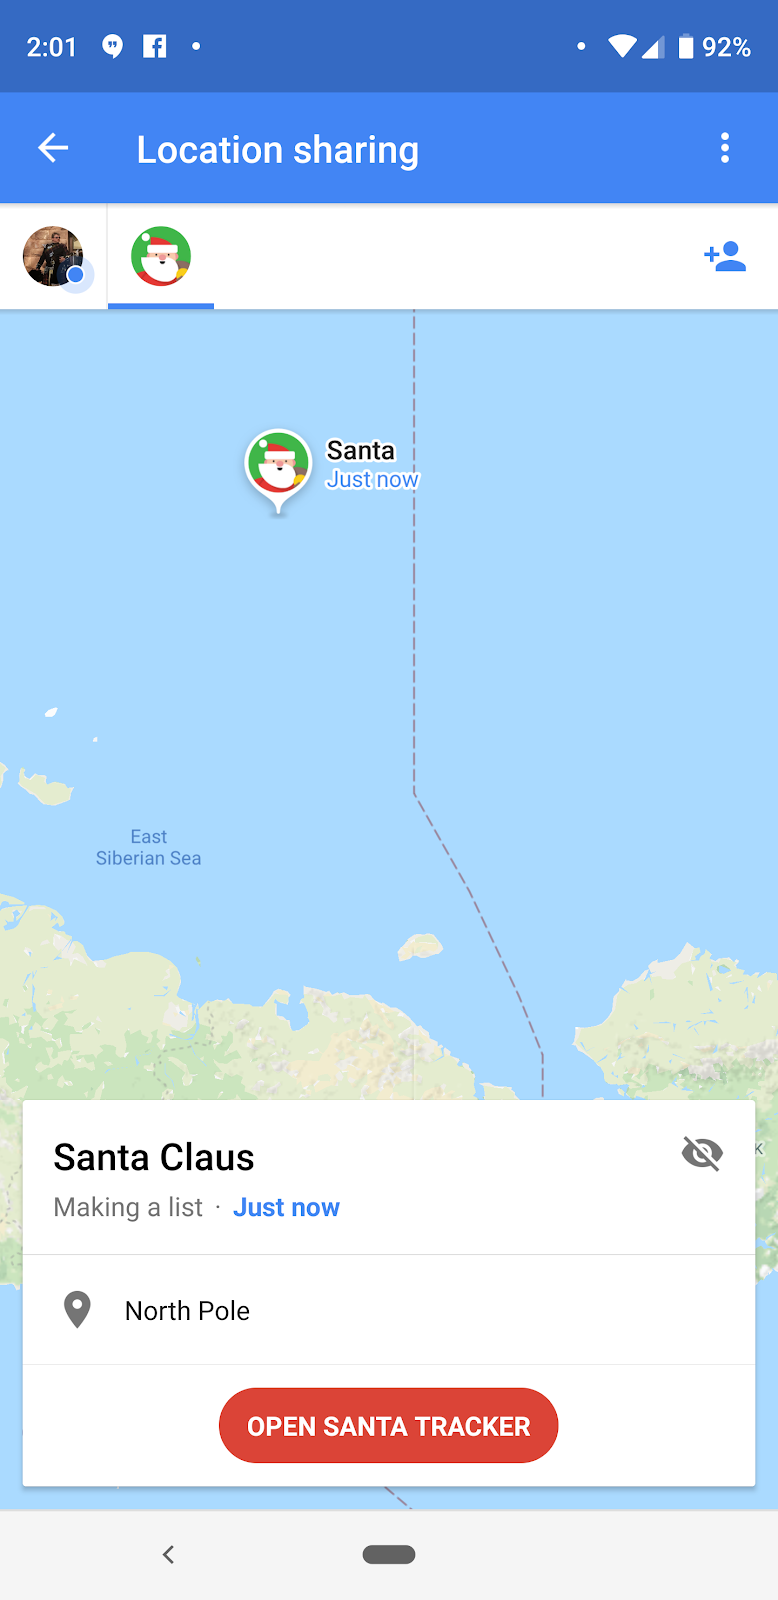 Get ready for Santa with Google Maps ~ Android Coliseum on google maps lafayette, google maps indiana, google maps mother teresa, google maps danville, google maps salem, google maps syracuse, google maps newburgh, google maps georgetown, google maps rome, google maps dublin, google maps elkhart, google maps saint nicholas, google maps florida, google maps loch ness monster, google maps macy's, google maps versailles, google maps north pole, google maps carmel, google maps petersburg, google maps scotland,